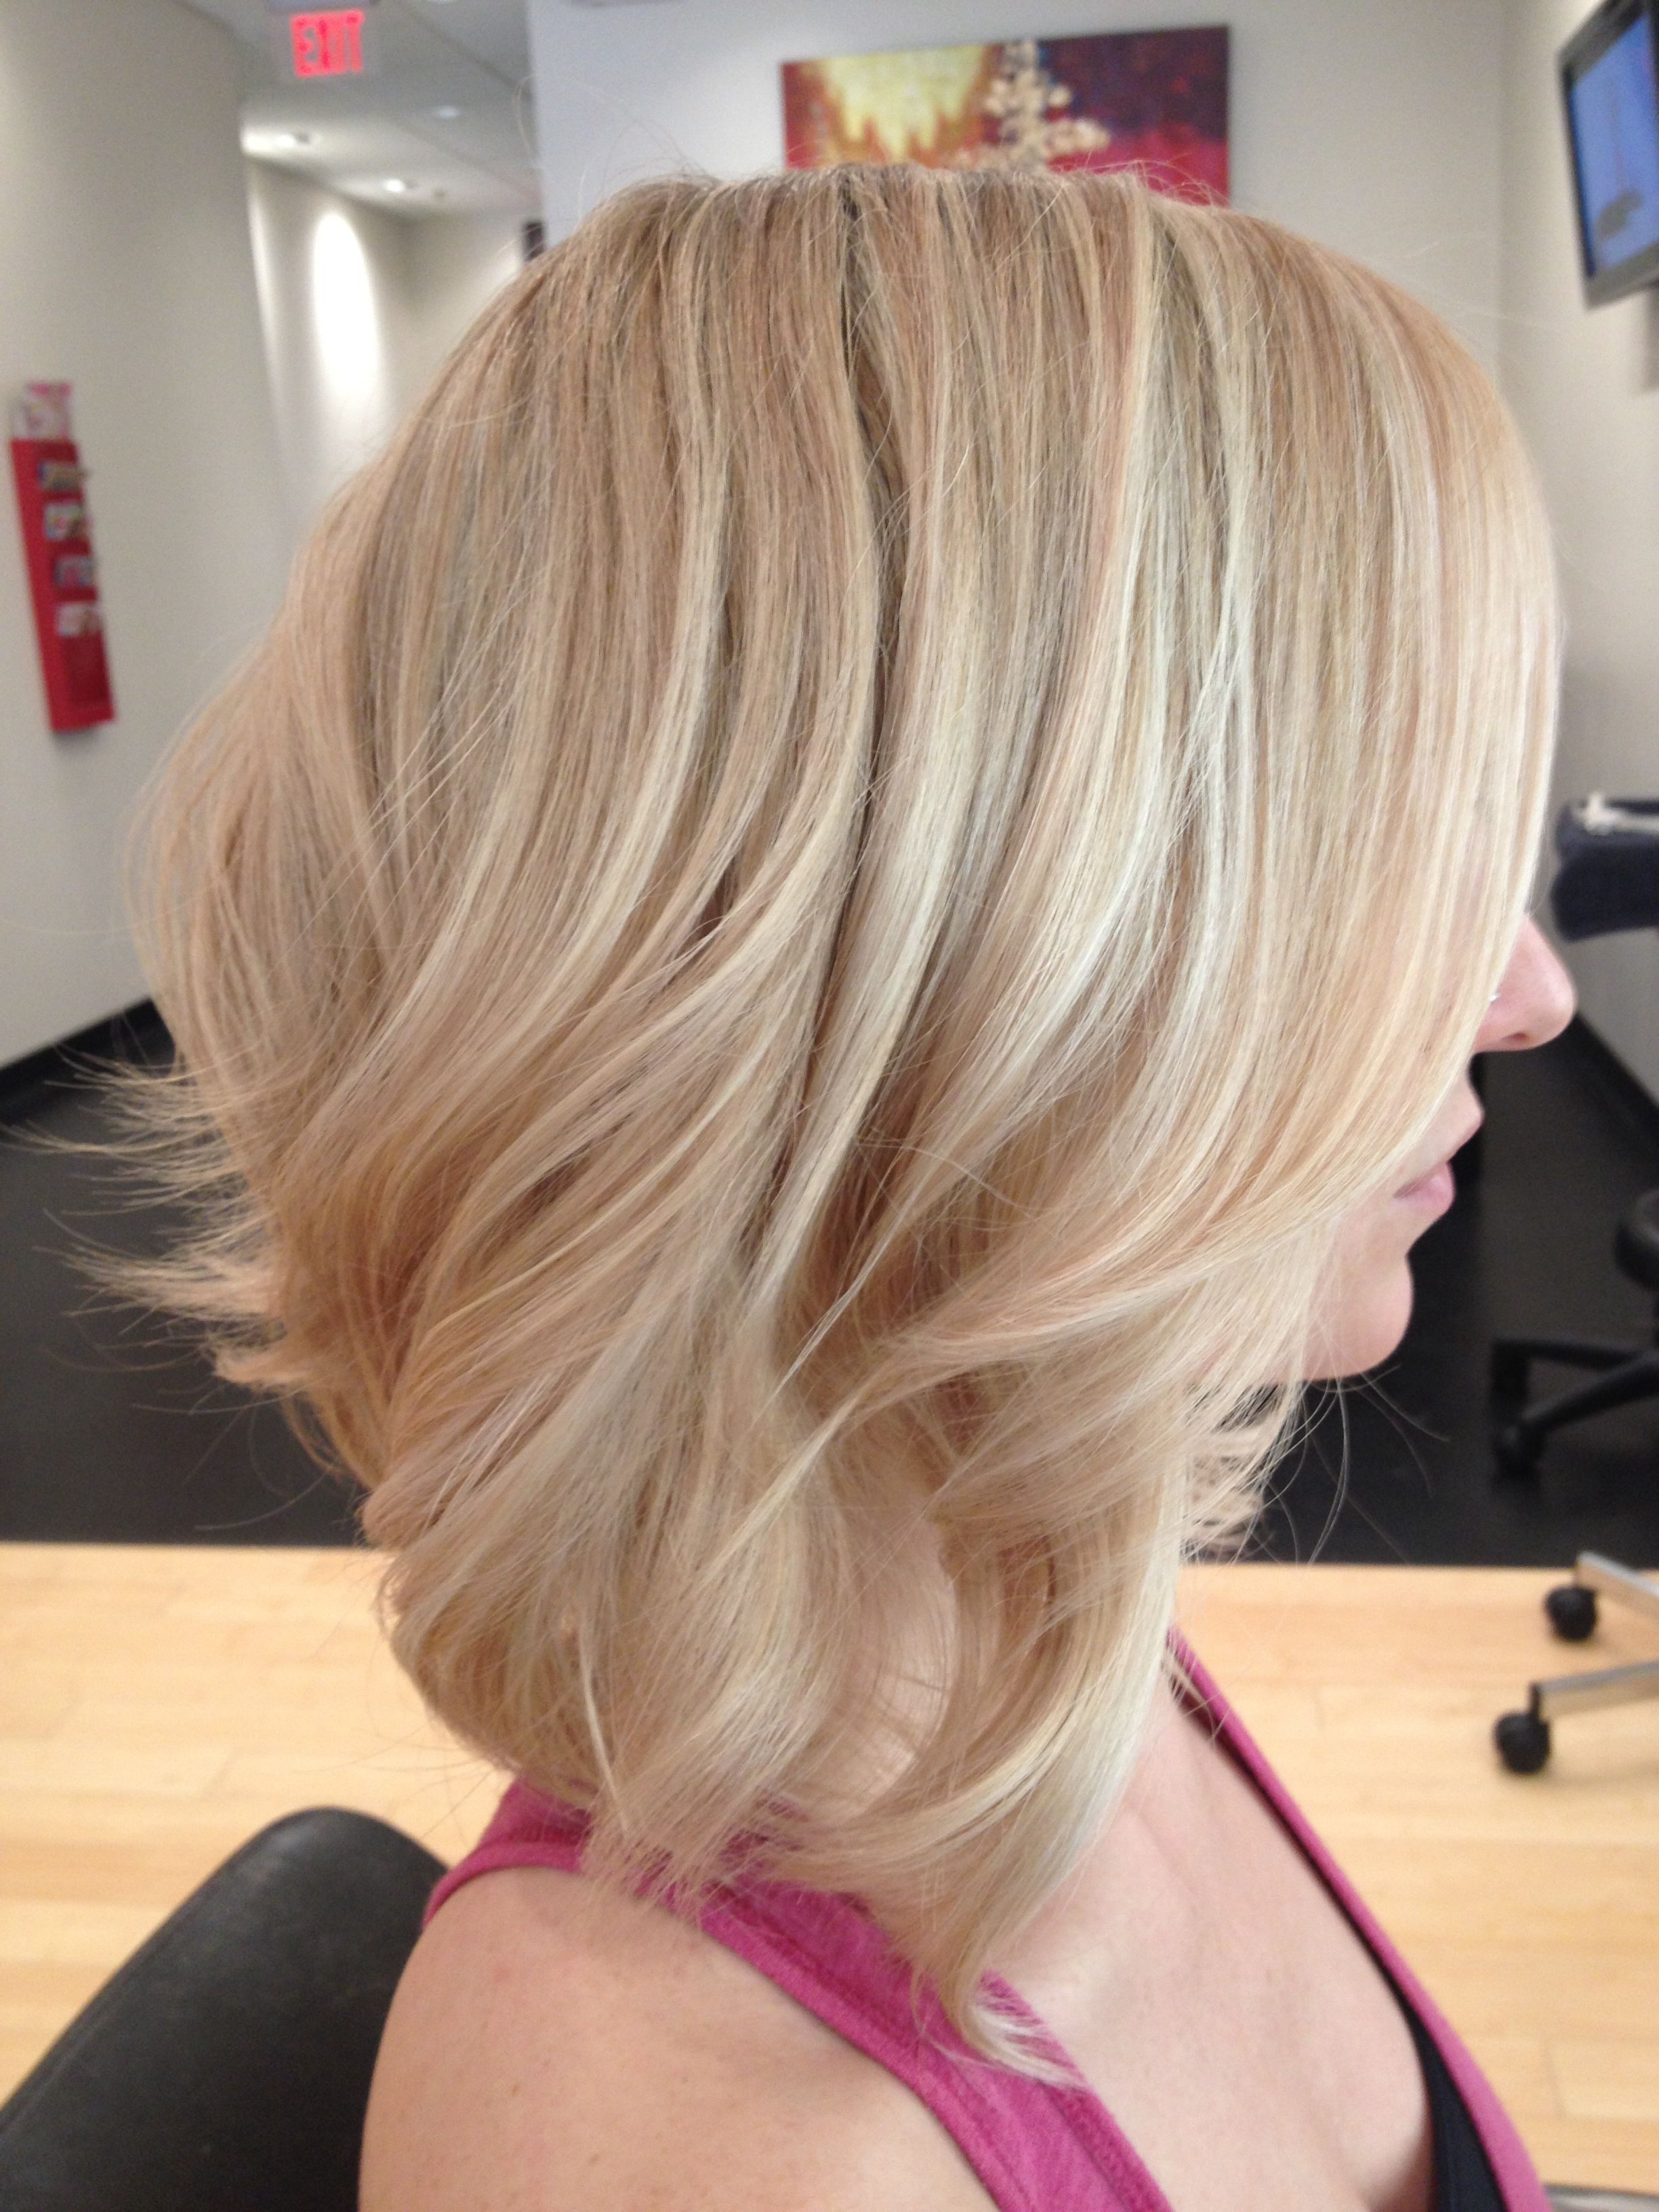 Summer Buttery Blonde With Texture Www Rustiquesalonandspa Com Rva